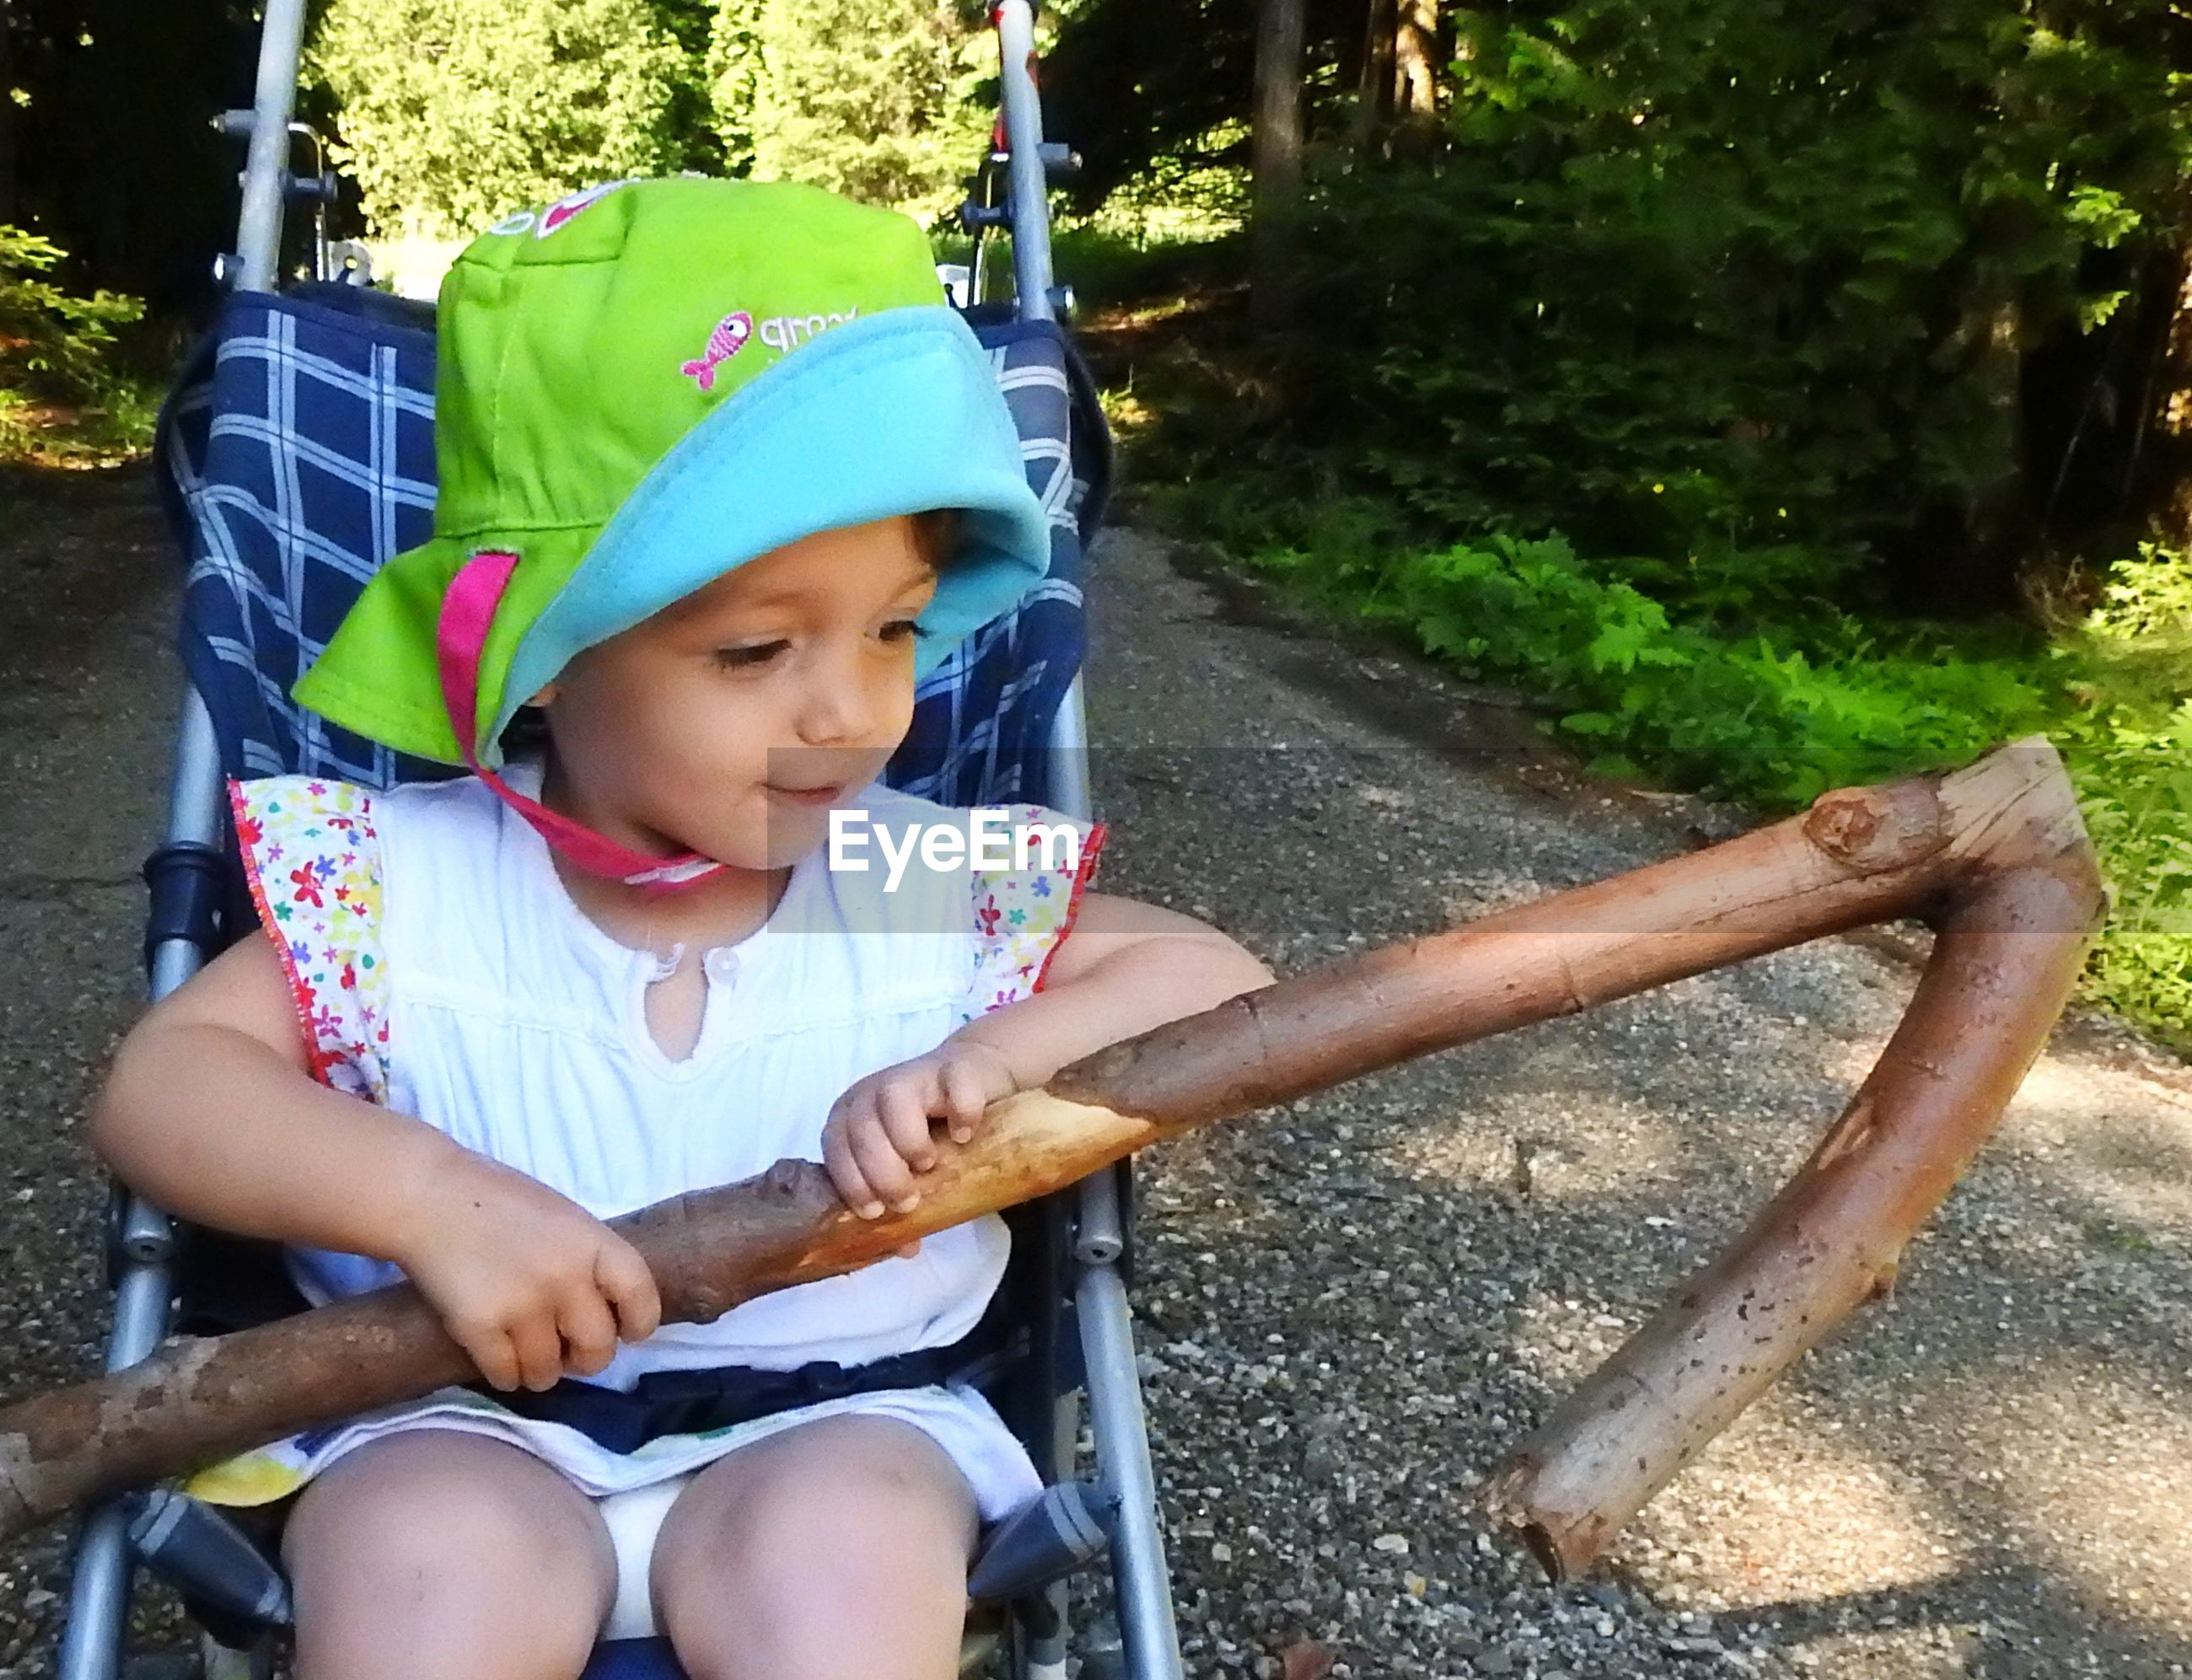 Close-up of girl holding stick while sitting on baby stroller at park